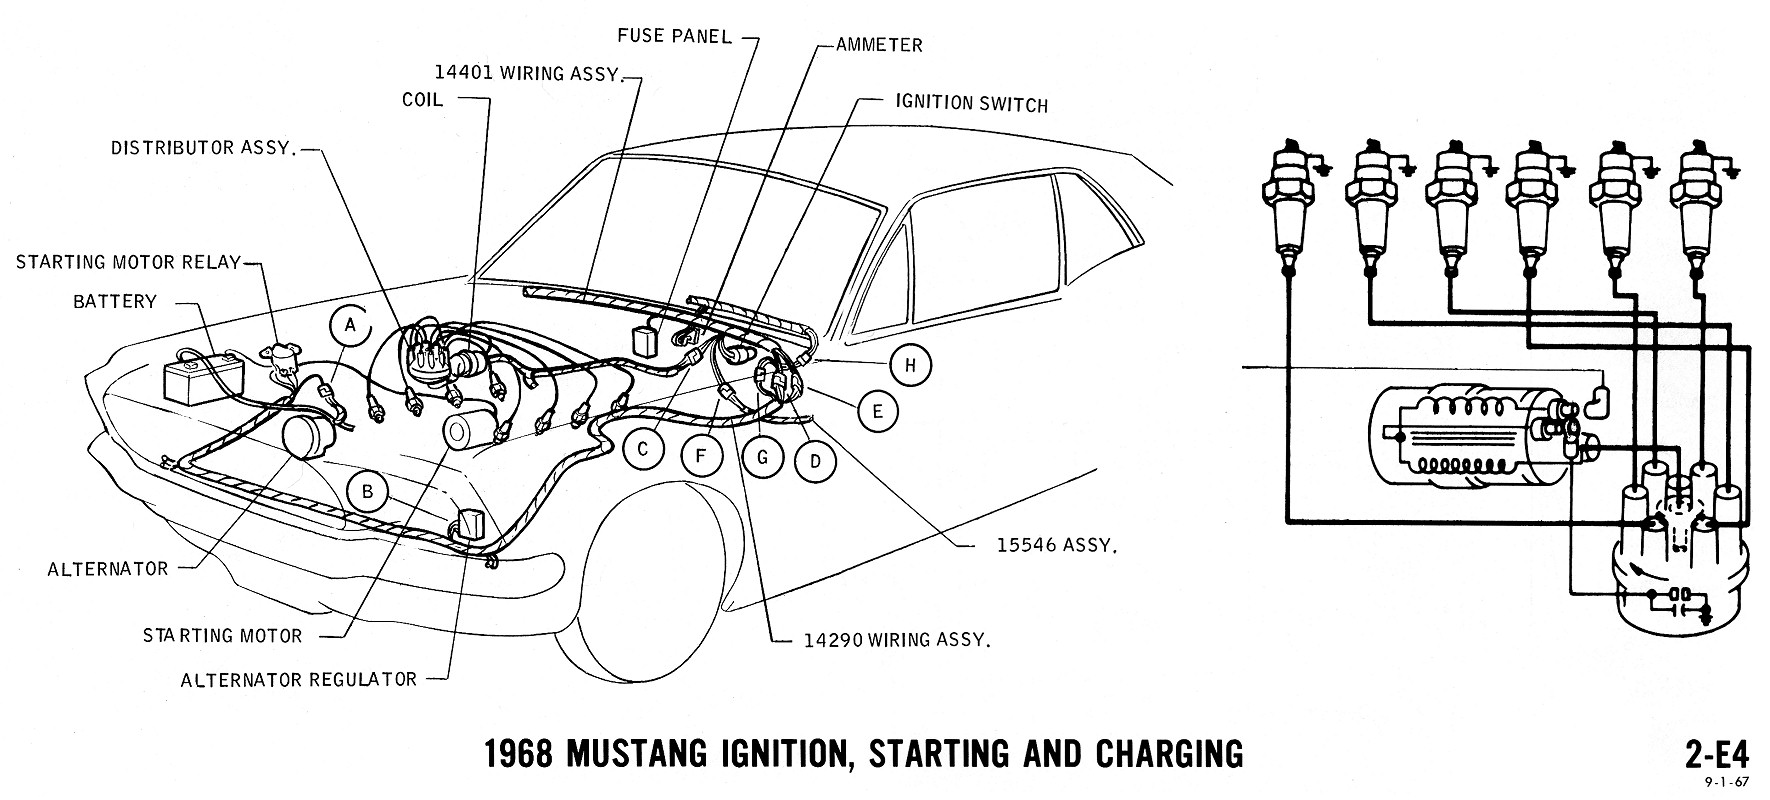 1968 mustang wiring diagram ignition starting charging 2 1968 mustang wiring diagrams and vacuum schematics average joe 68 mustang headlight wiring diagram at edmiracle.co